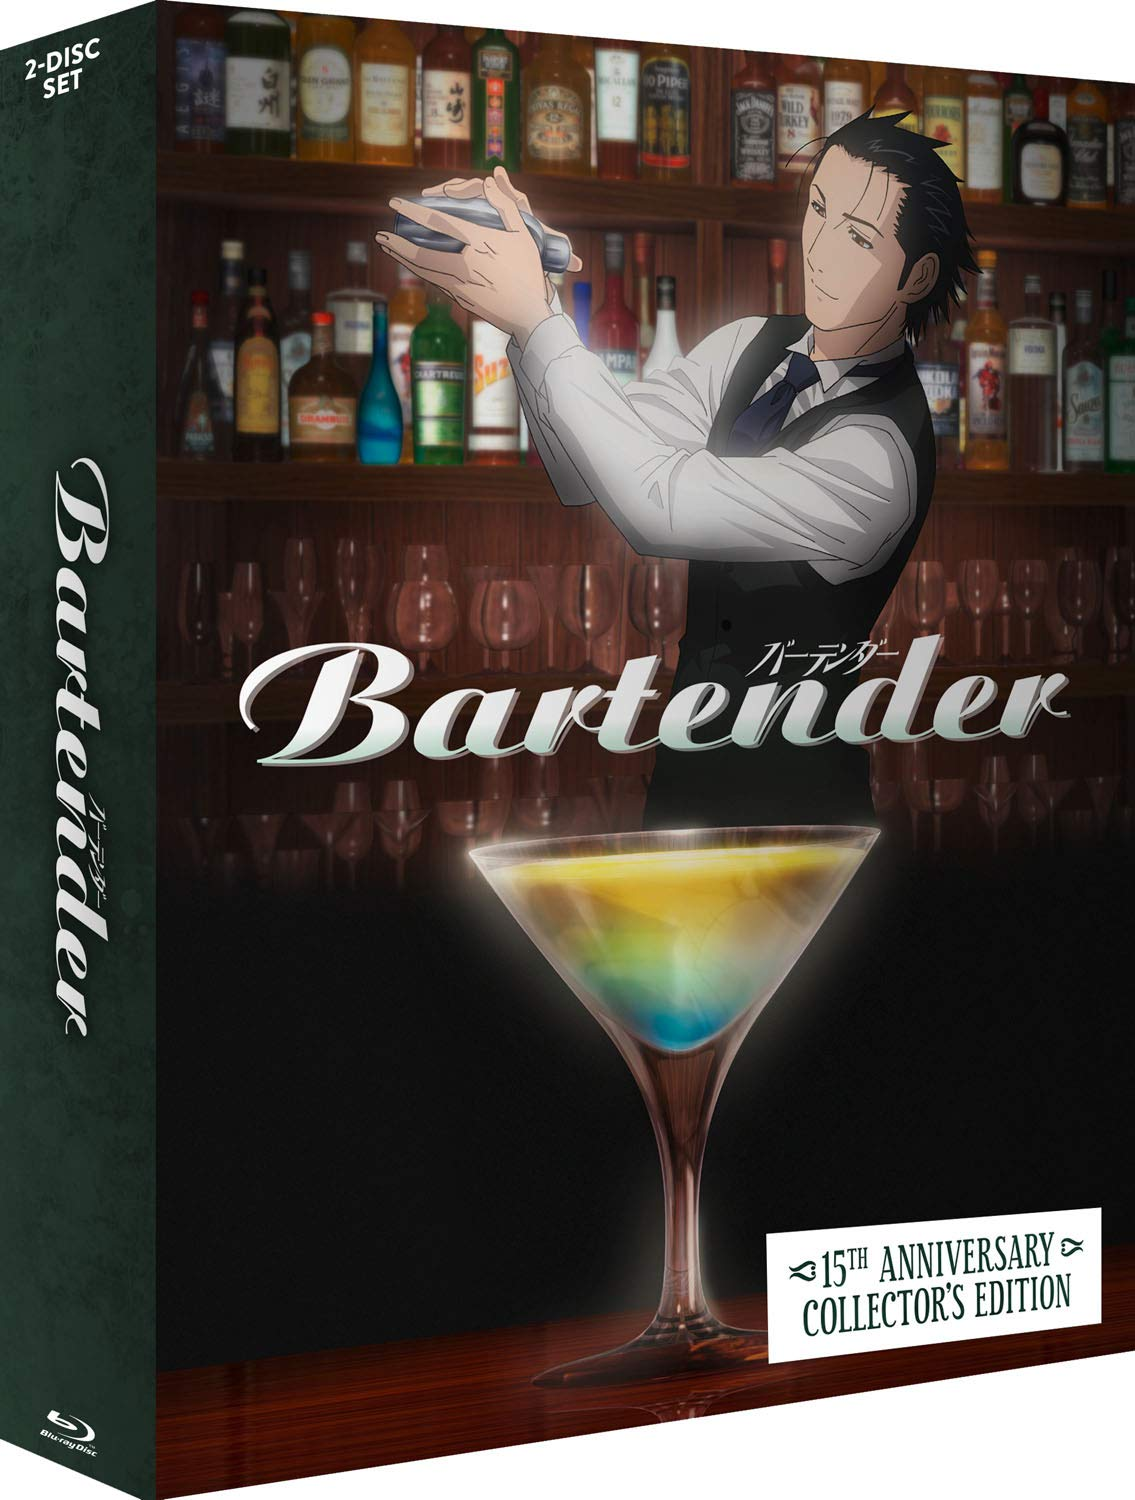 Bartender: 15th Anniversary Collector's Edition Regular discount Ranking TOP9 Blu-ray